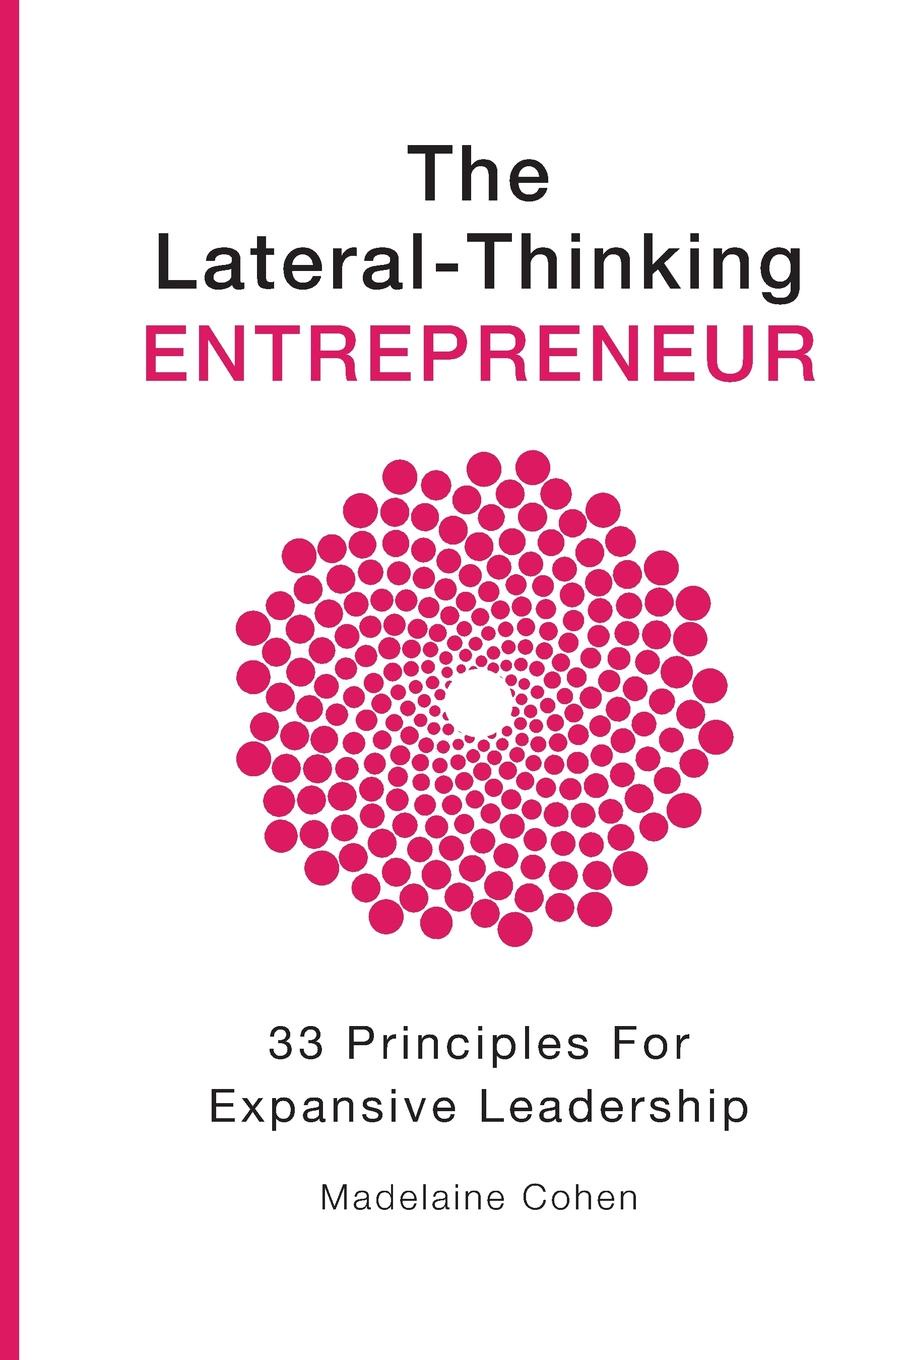 Madelaine Cohen The Lateral Thinking Entrepreneur - 33 Principles for Expansive Leadership suzanne morse w smart communities how citizens and local leaders can use strategic thinking to build a brighter future